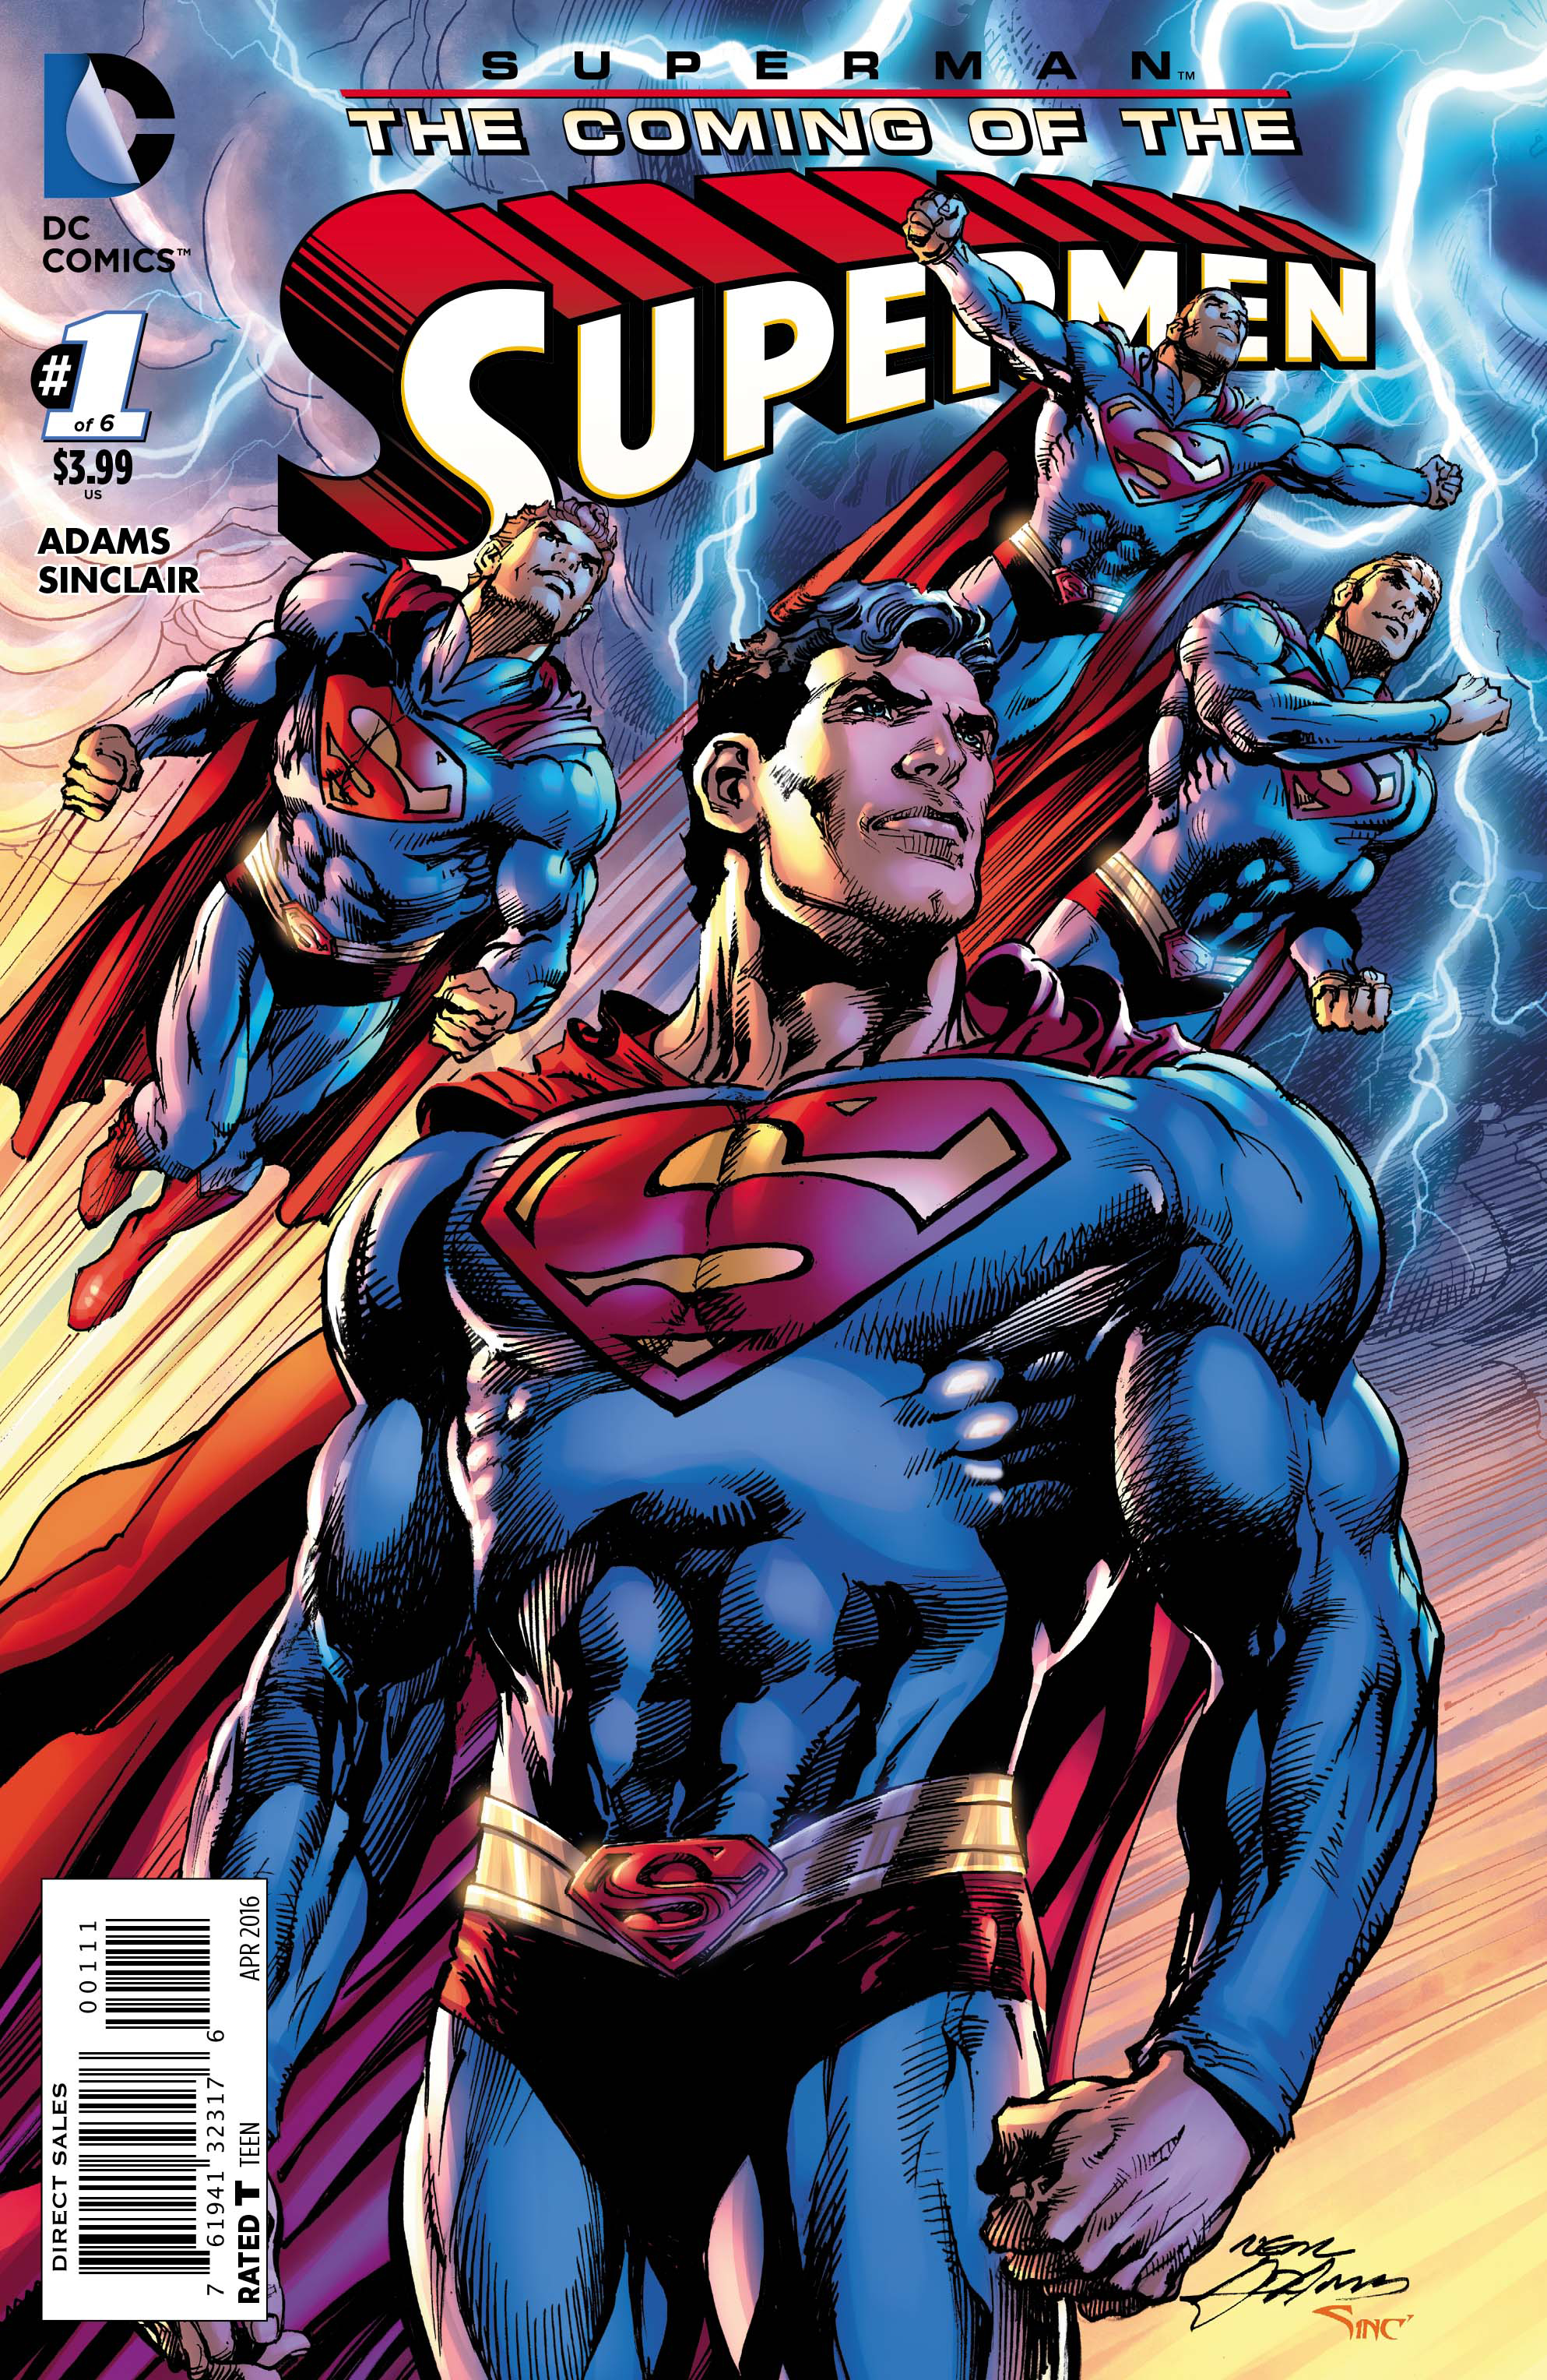 SUPERMAN THE COMING OF THE SUPERMEN #1